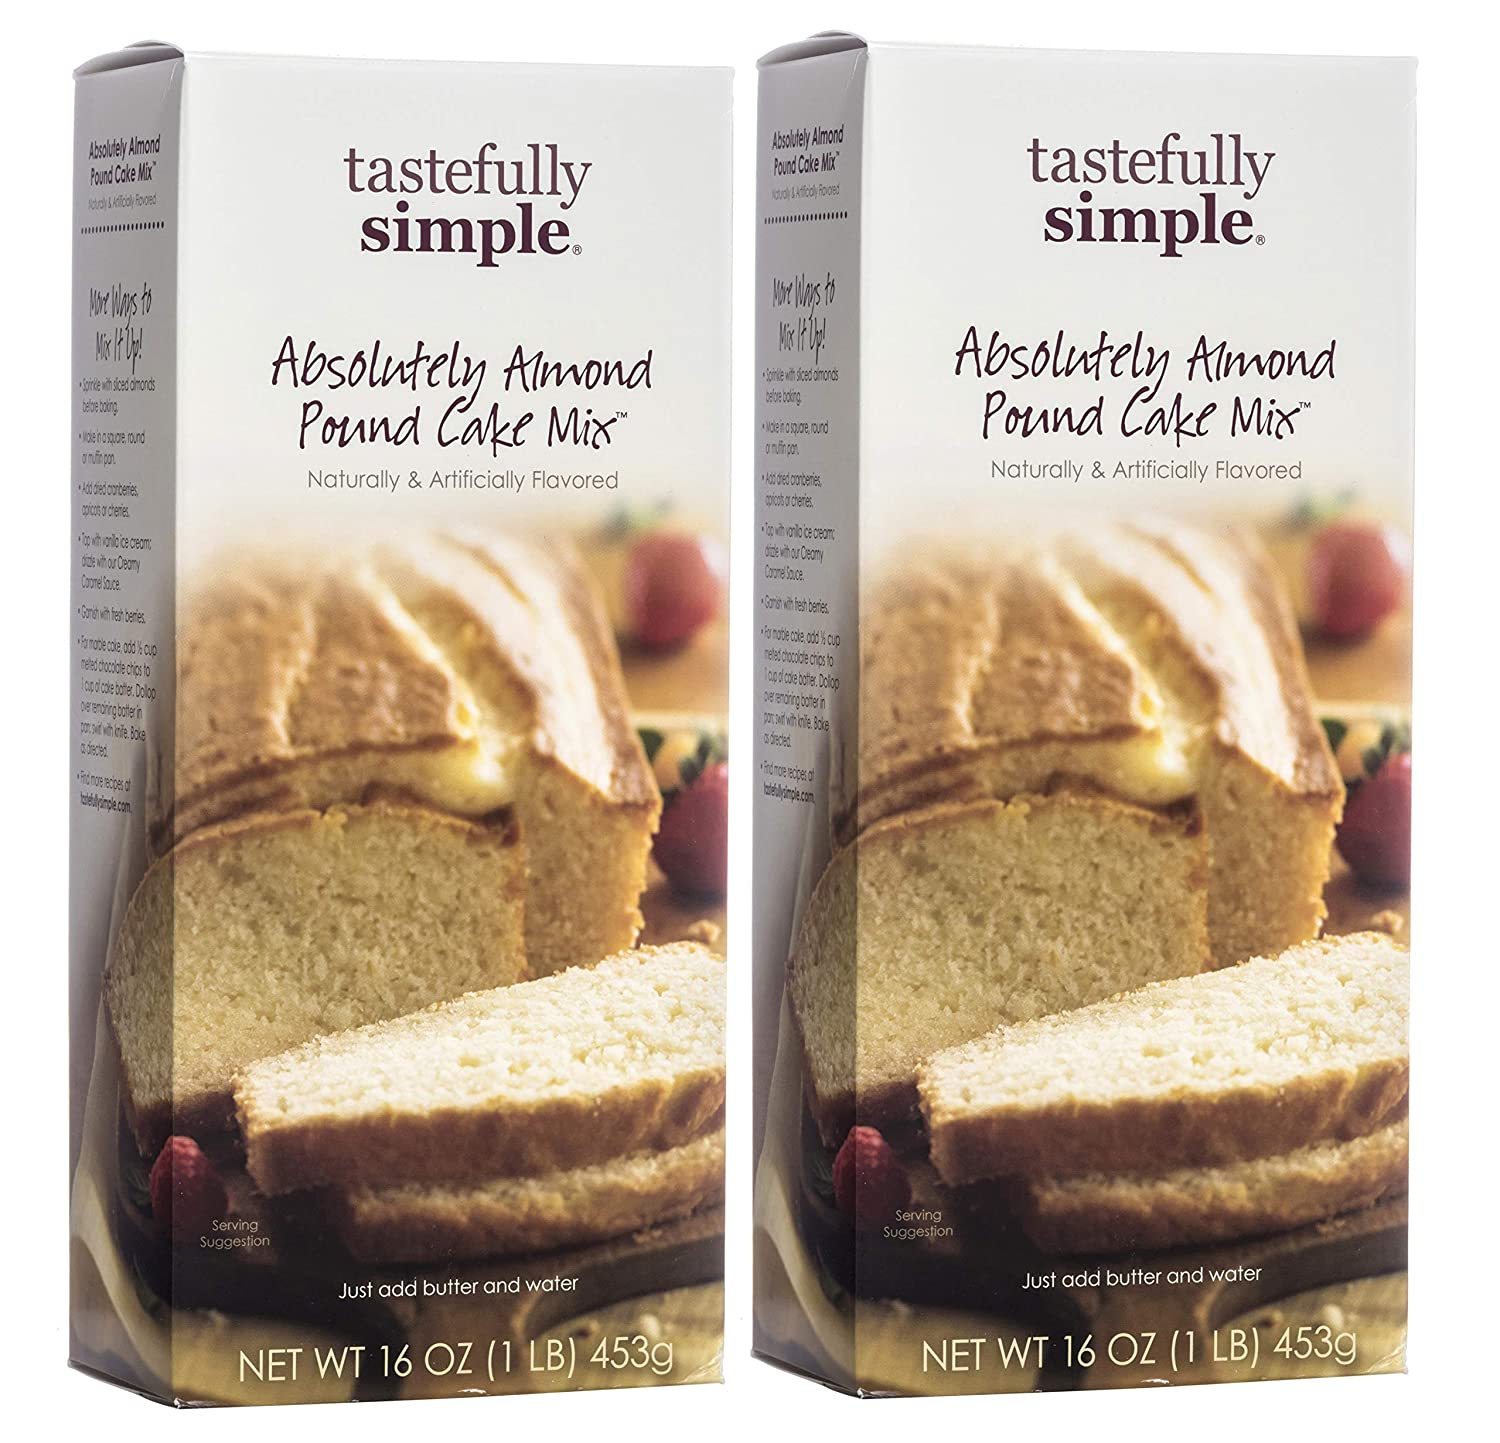 tastefully simple Absolutamente Almendra Libra Pastel Mix ...